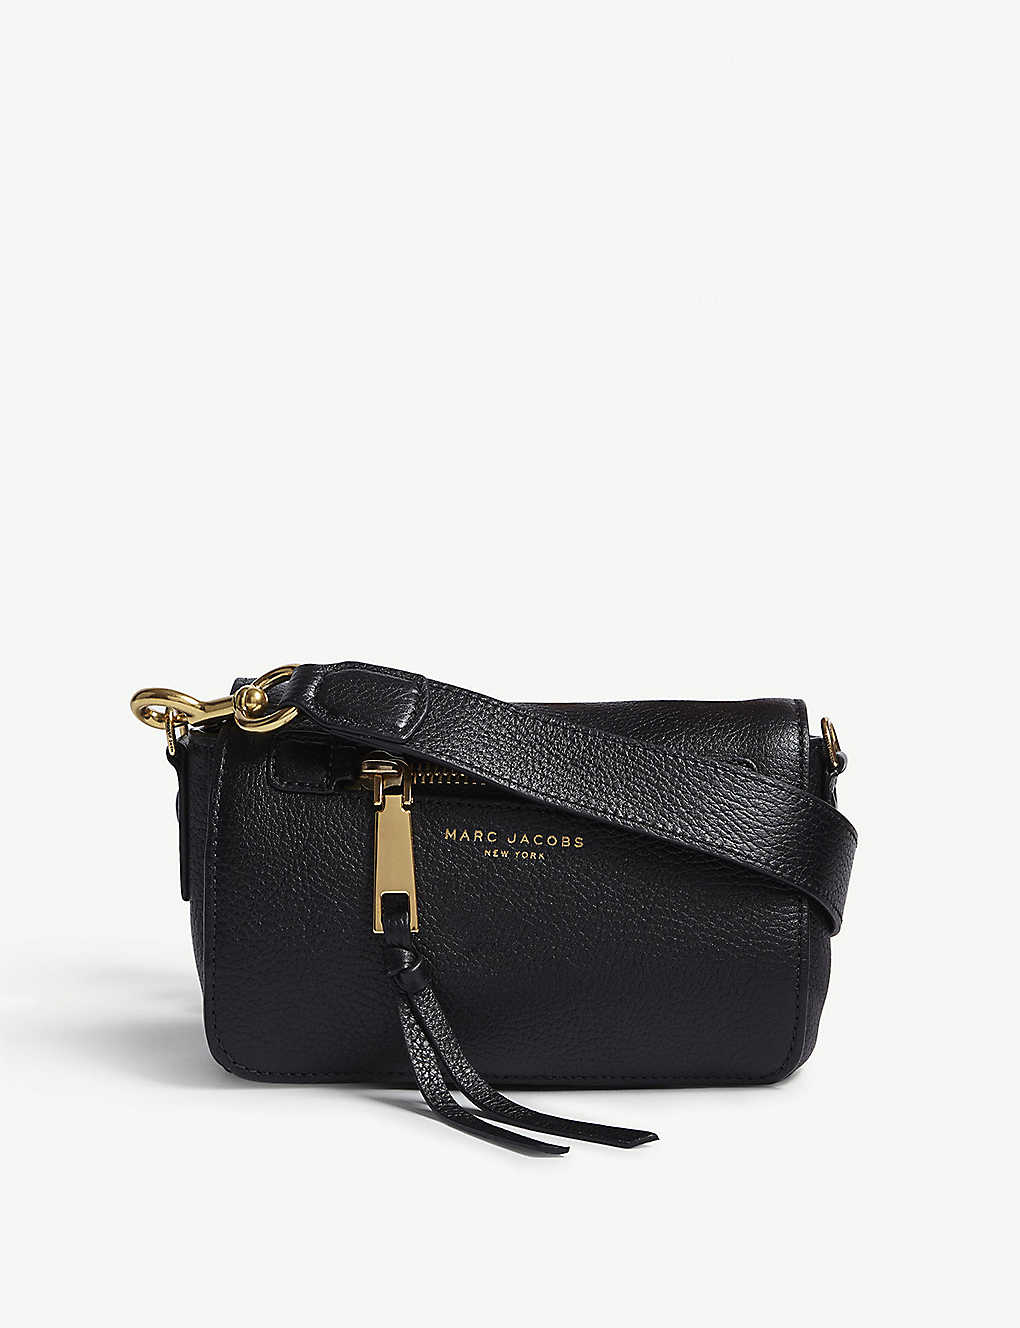 9ea5e338b5afc MARC JACOBS - Recruit leather cross-body bag | Selfridges.com